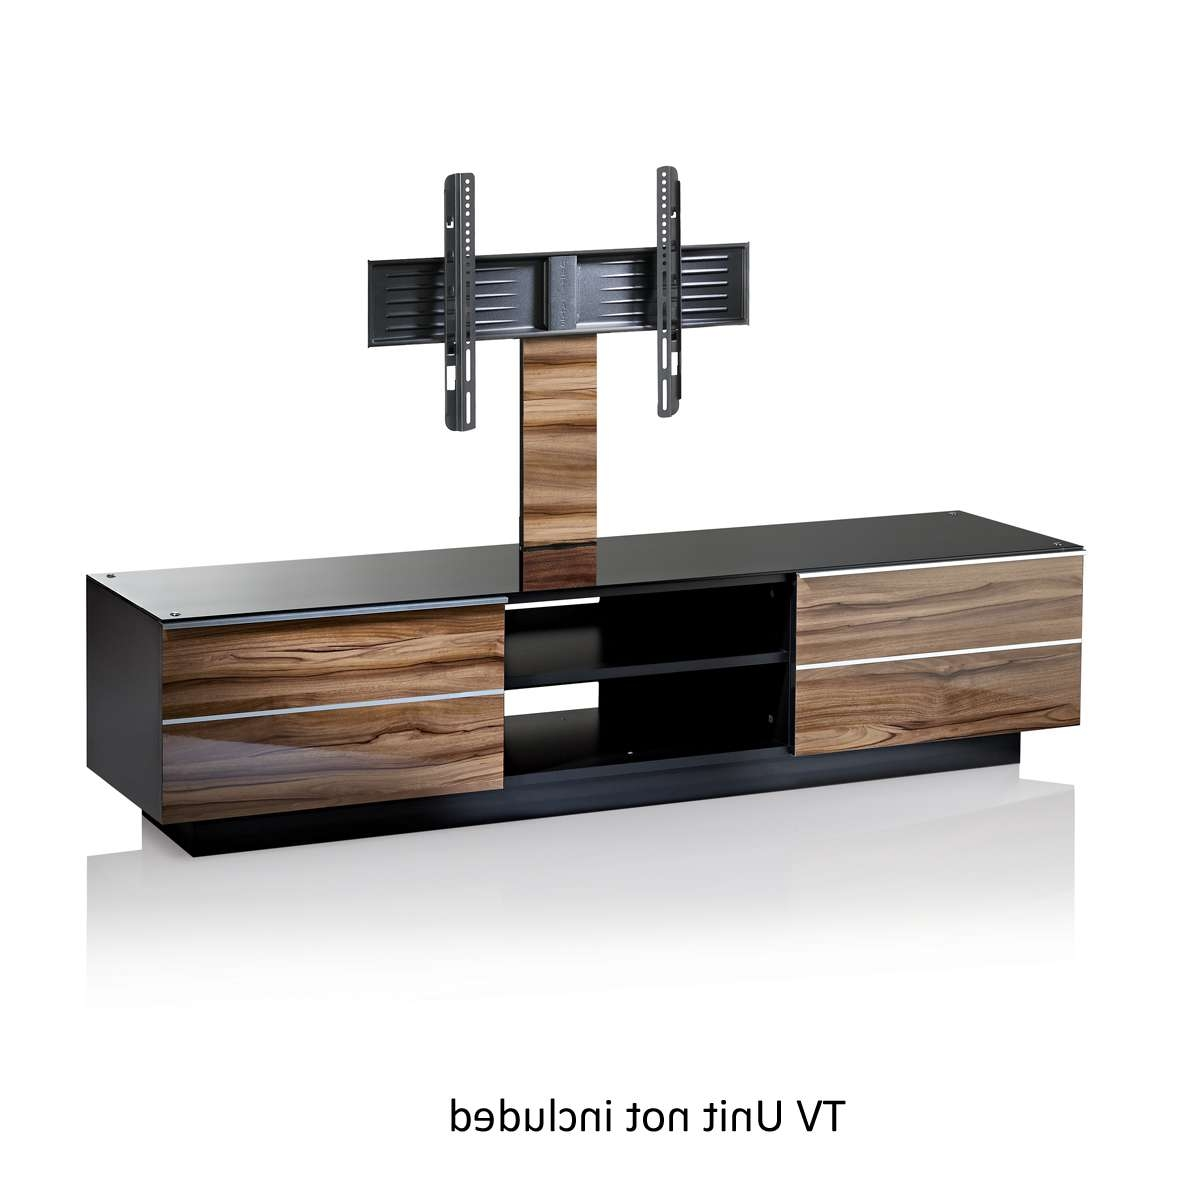 Milano G B 80 Mln Cantilever Tv Bracket,ukcf Ultimate,,uk Cf Within Cantilever Tv Stands (View 9 of 15)